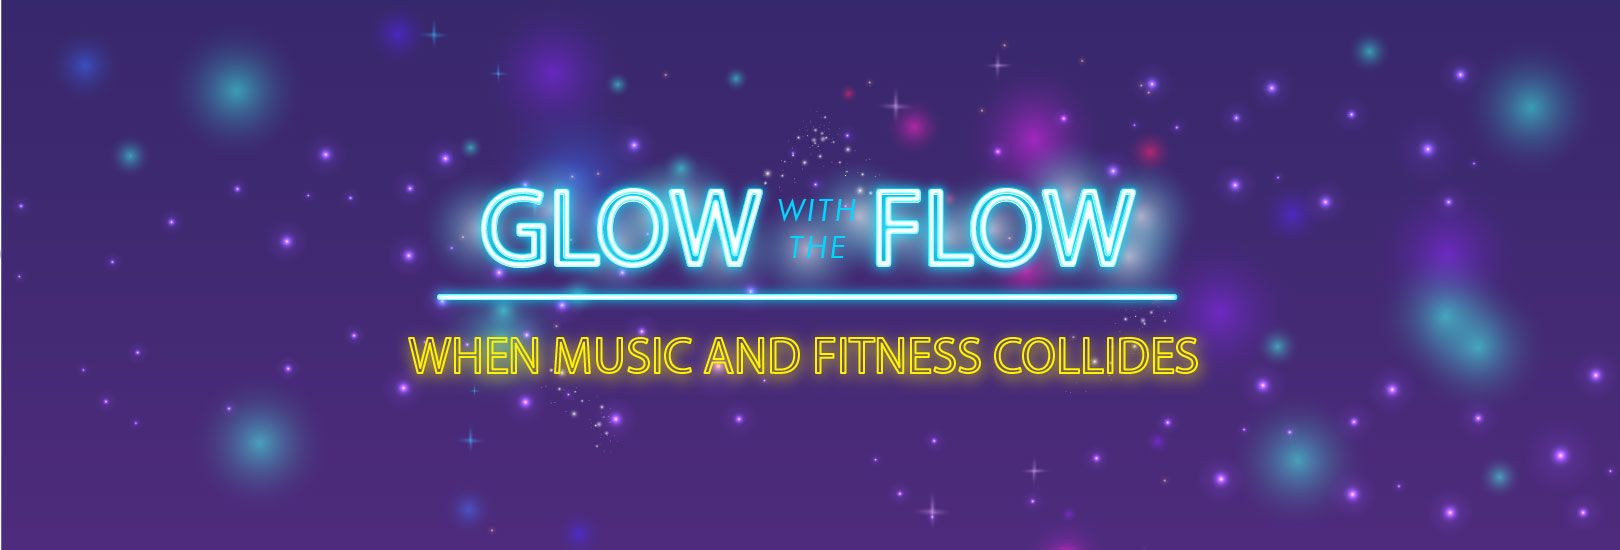 Glow Flow Party on 31 March 2018 at Kamandalu Ubud, Bali - Pound Fit, Glow in dark rave yoga, after party with live band